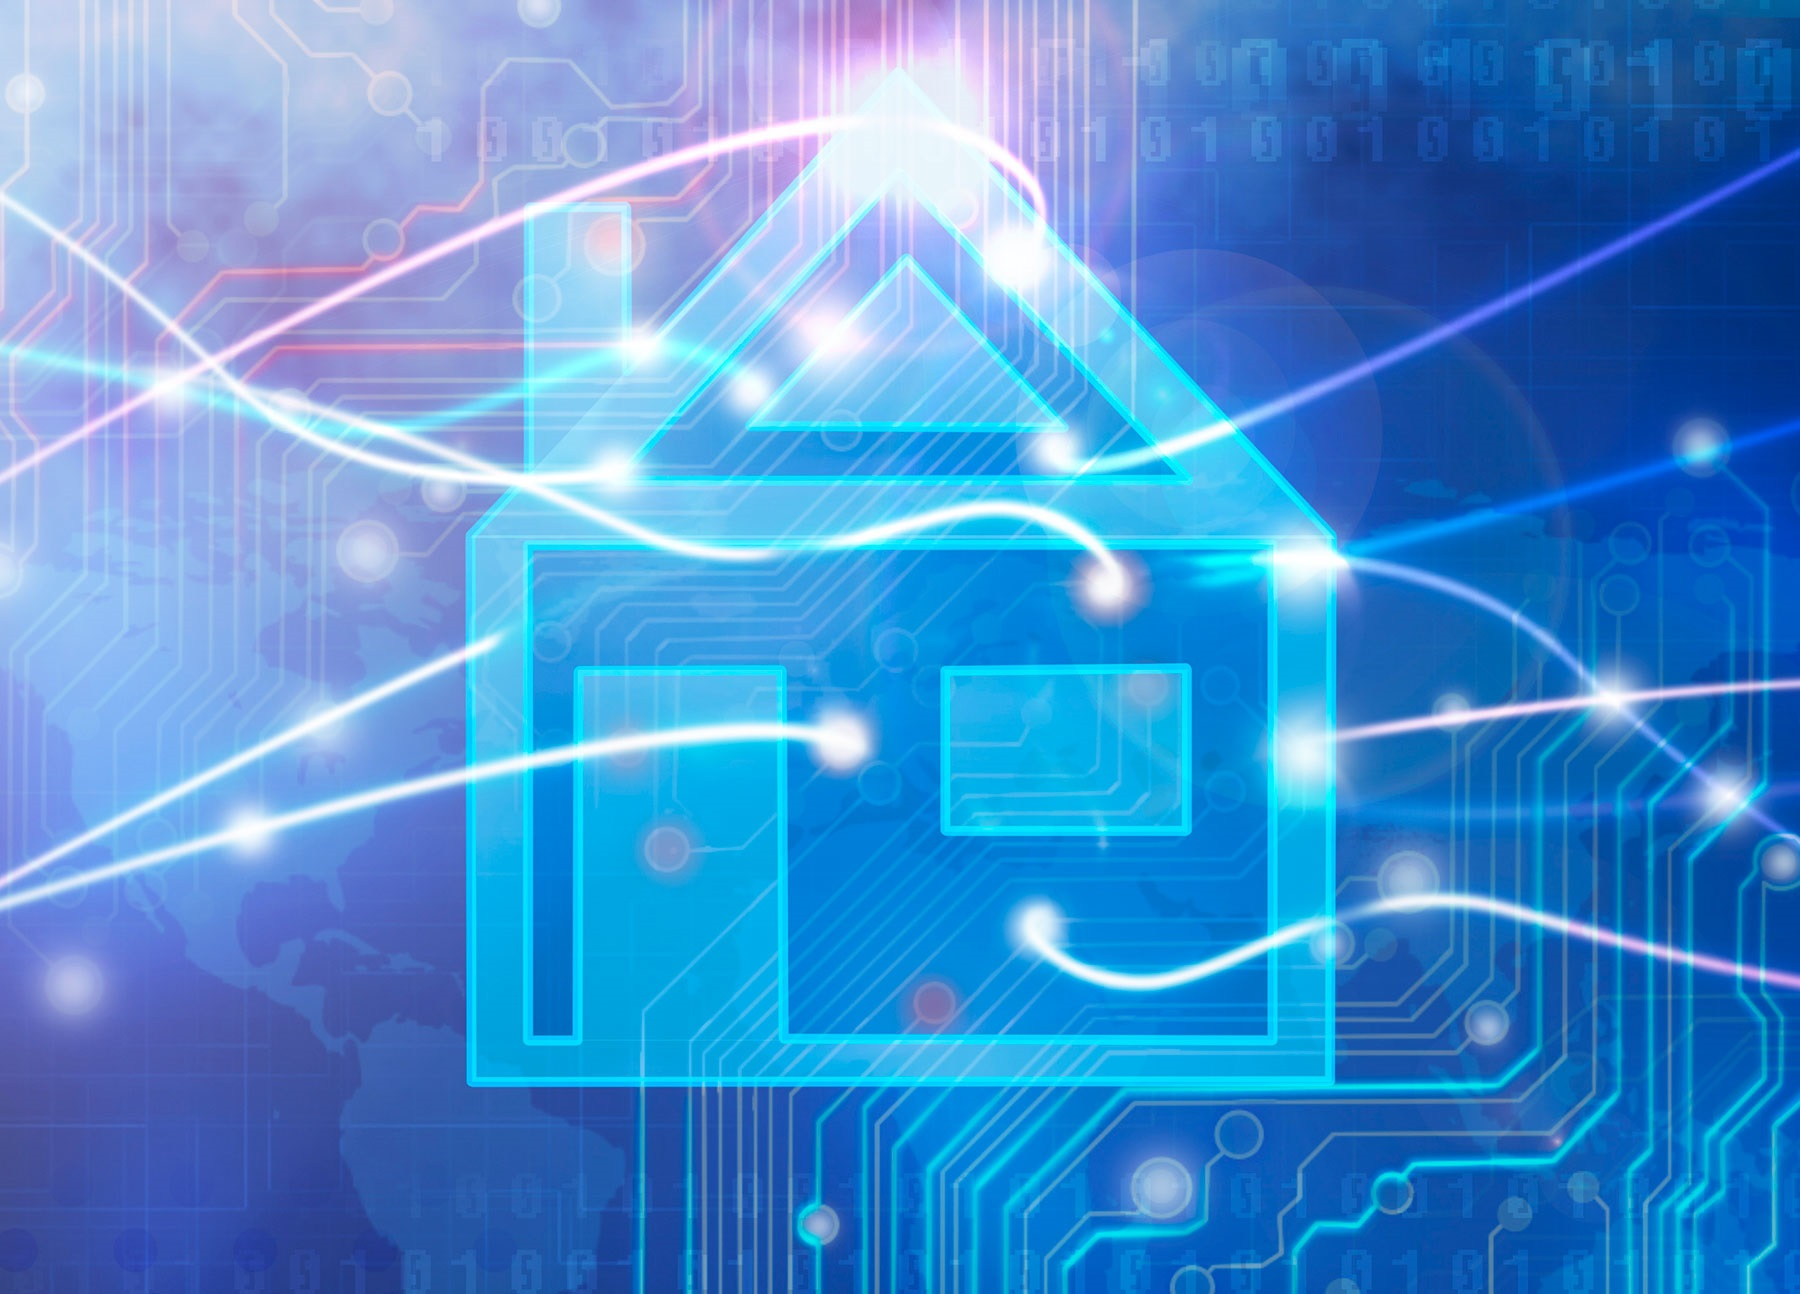 Attackers still want your data, but will take your IoT device as well